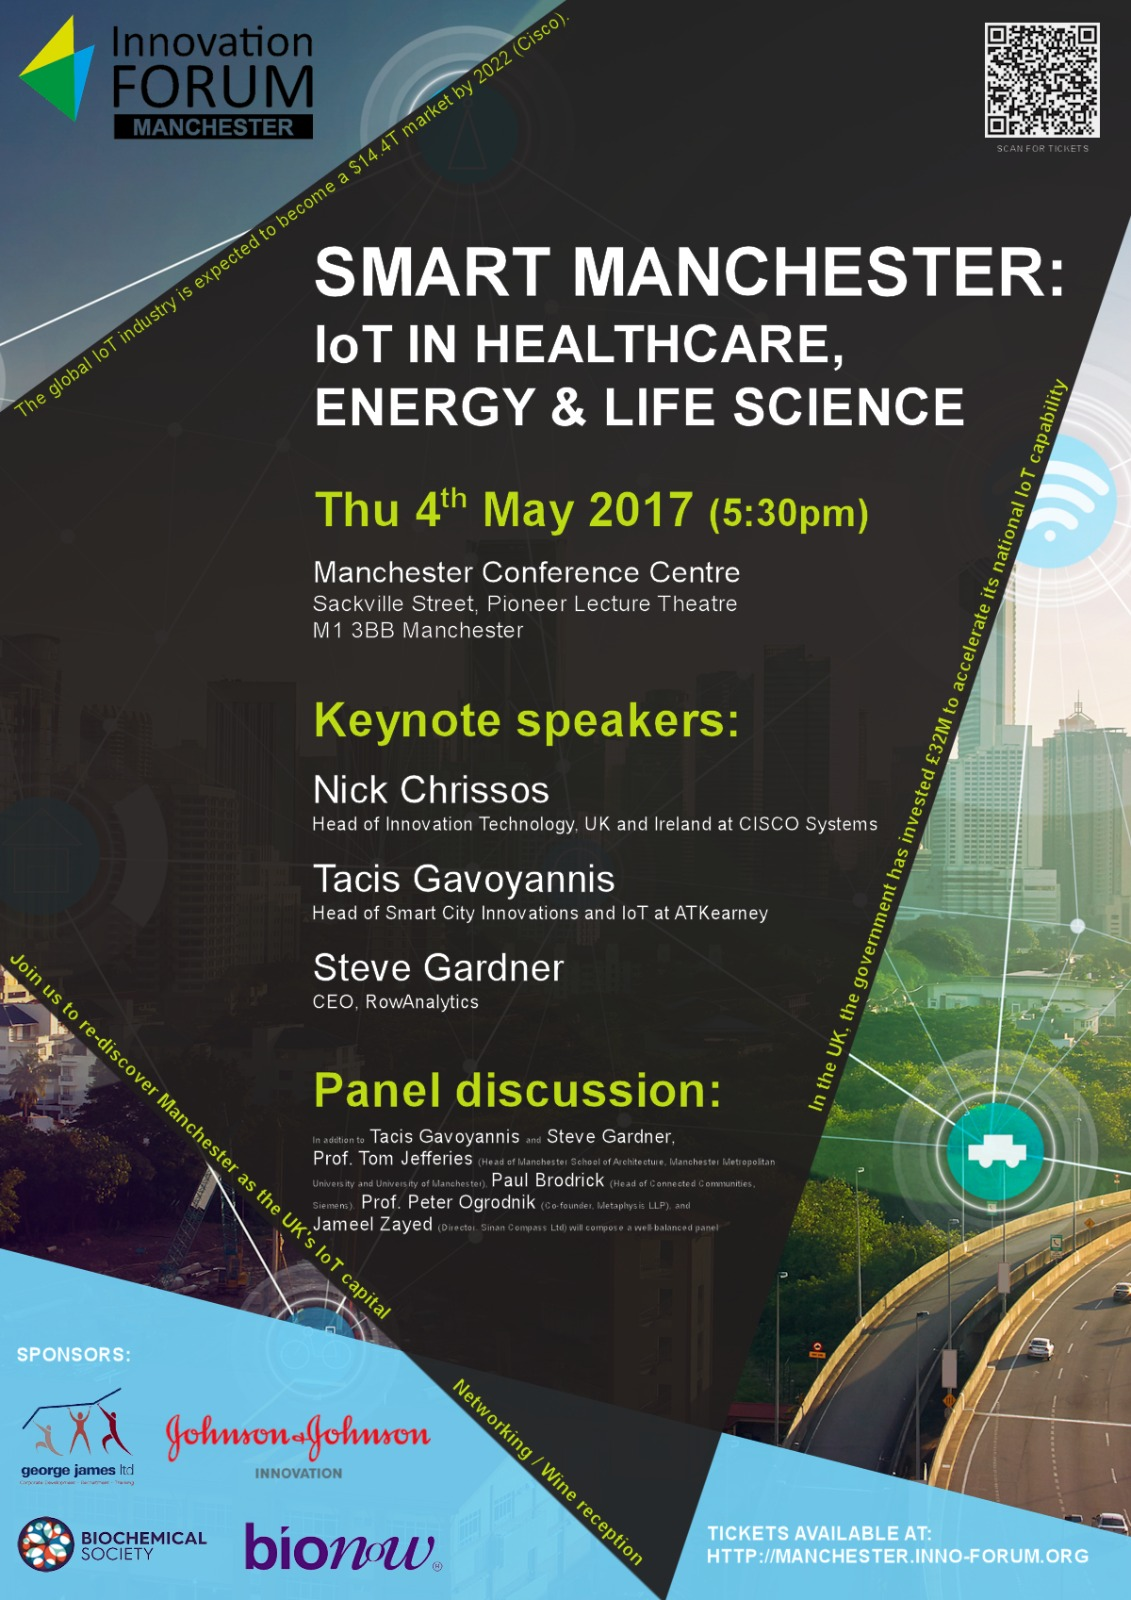 Smart Manchester: IoT in Healthcare, Energy & Life Sciences